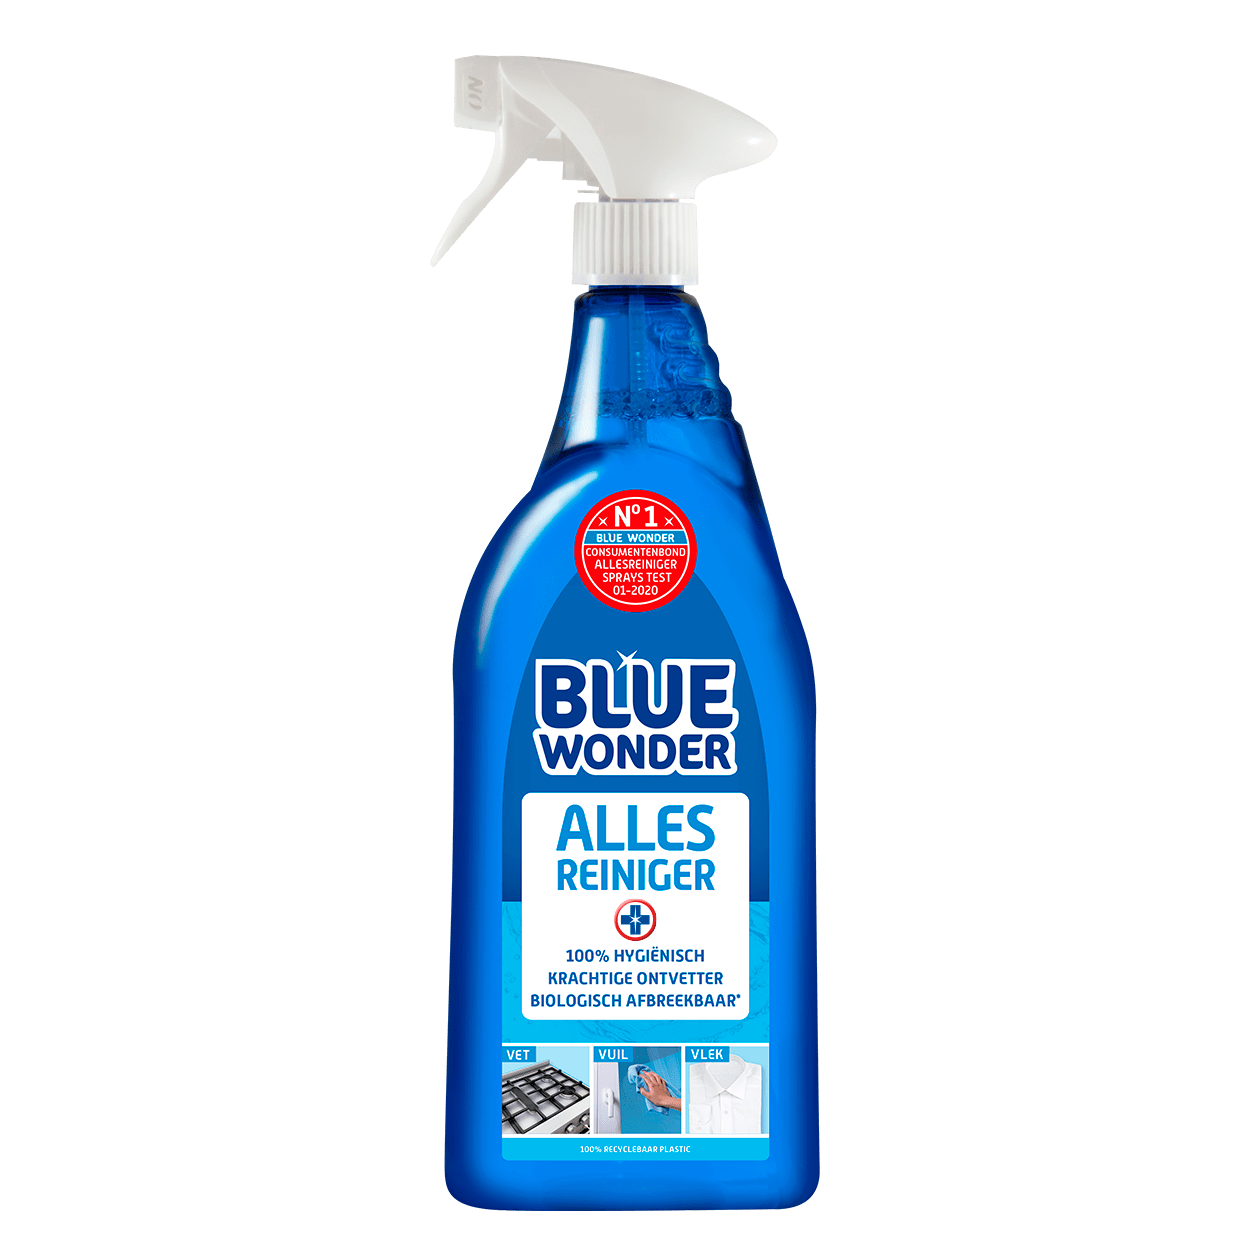 8712038001233 Blue Wonder Alles reiniger 750ml spray 2020 07 01 front 2